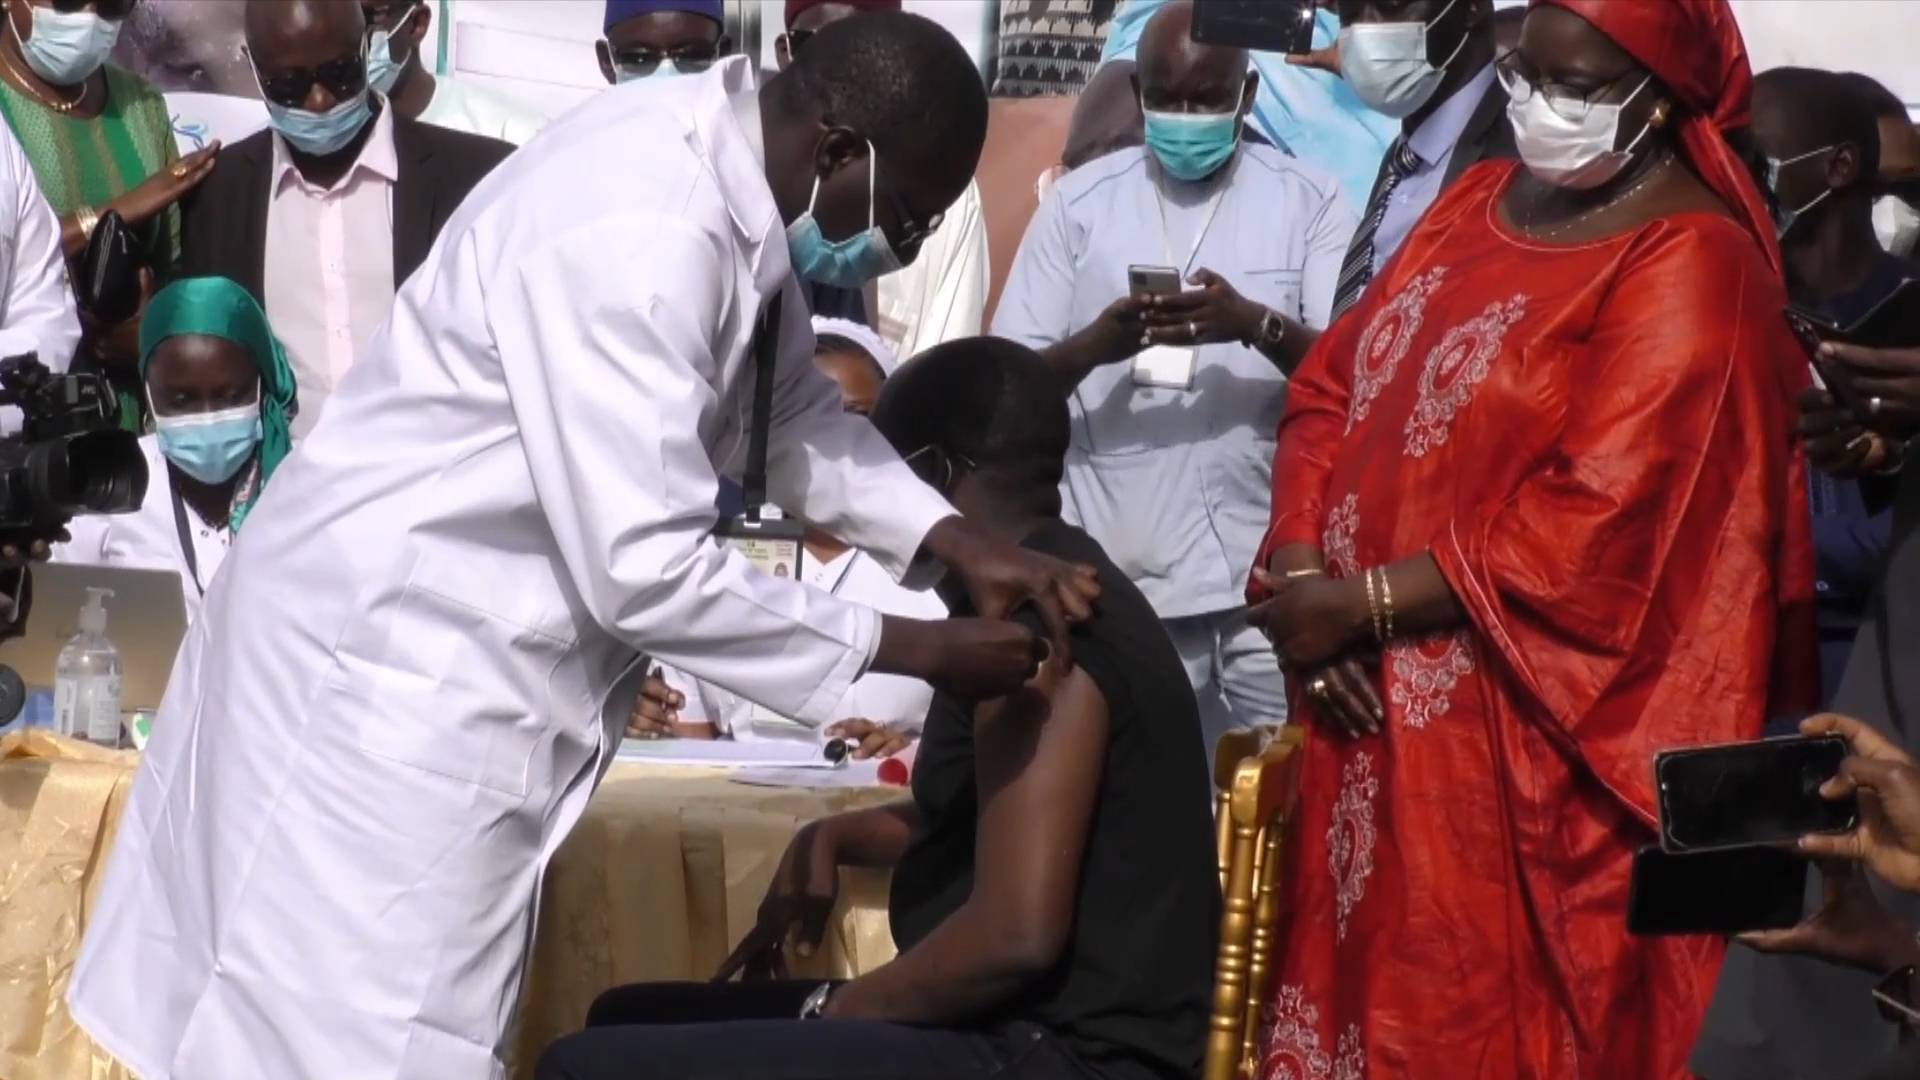 GLOBALink | Senegal kicks off COVID-19 vaccination campaign with China's Sinopharm vaccine